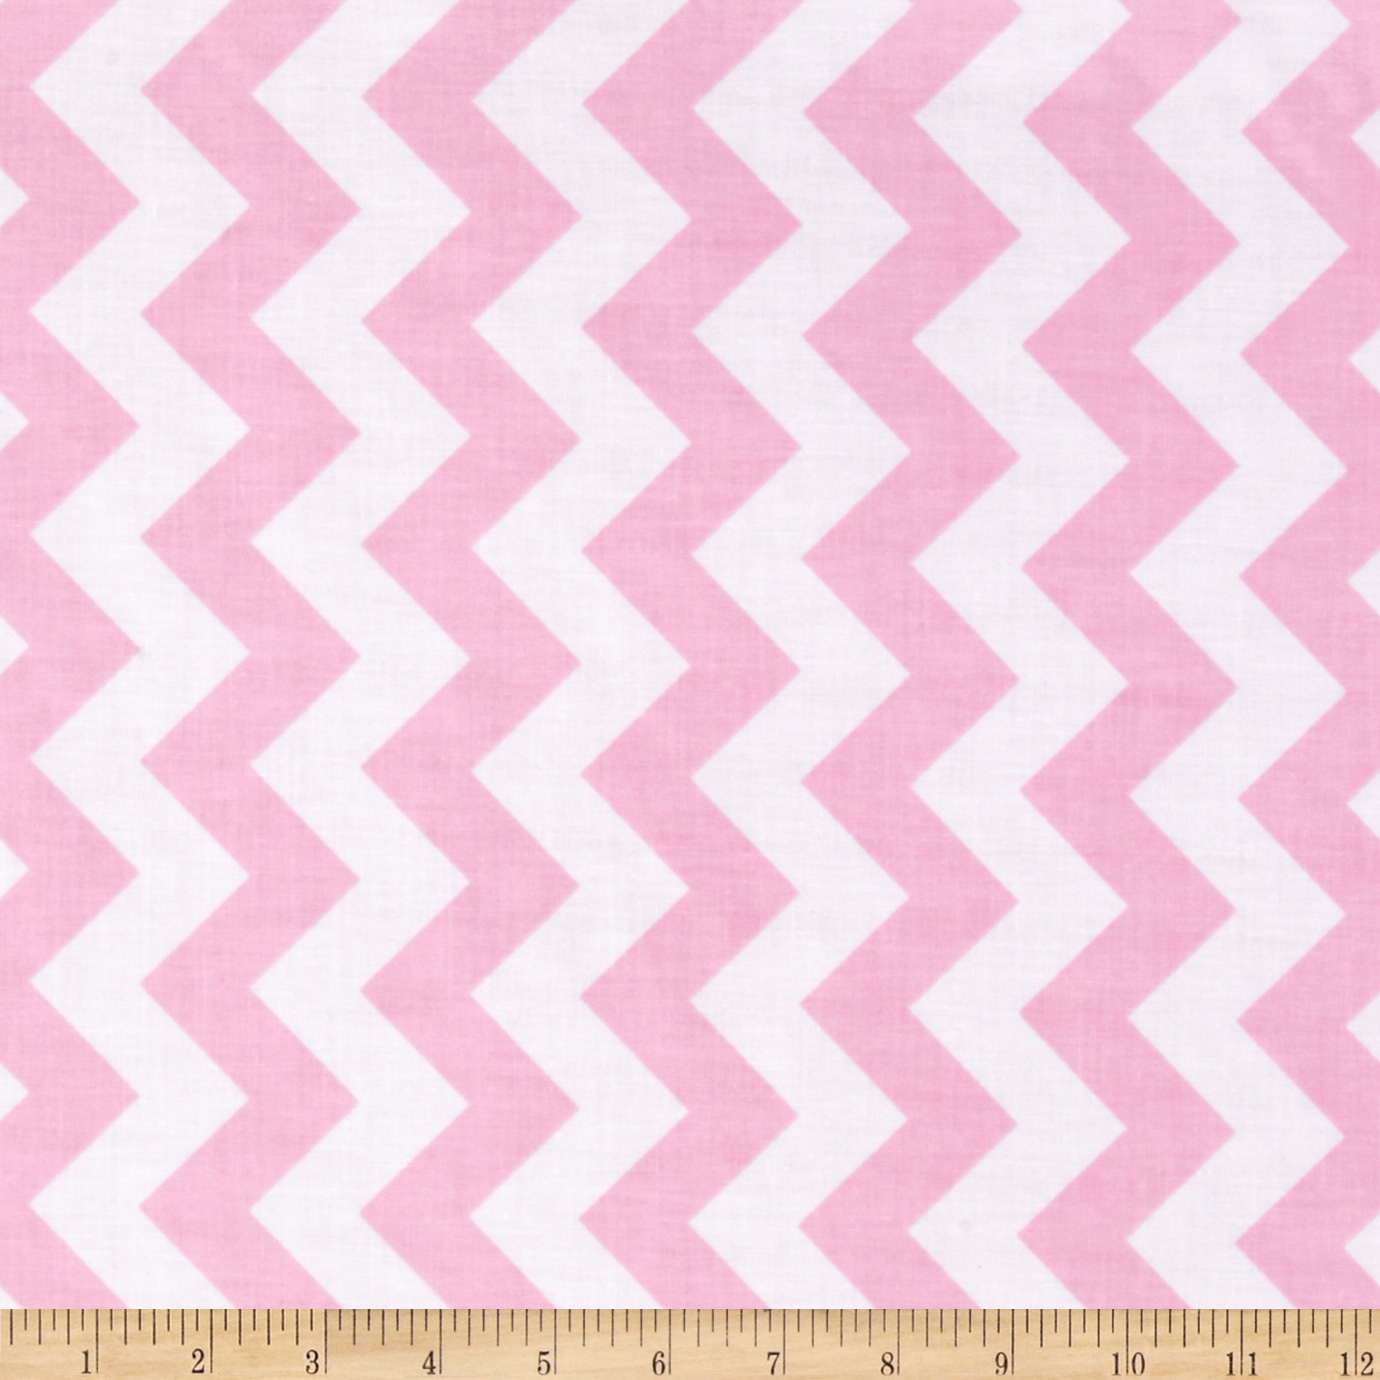 Riley Blake Laminate Medium Chevron Baby Pink Fabric